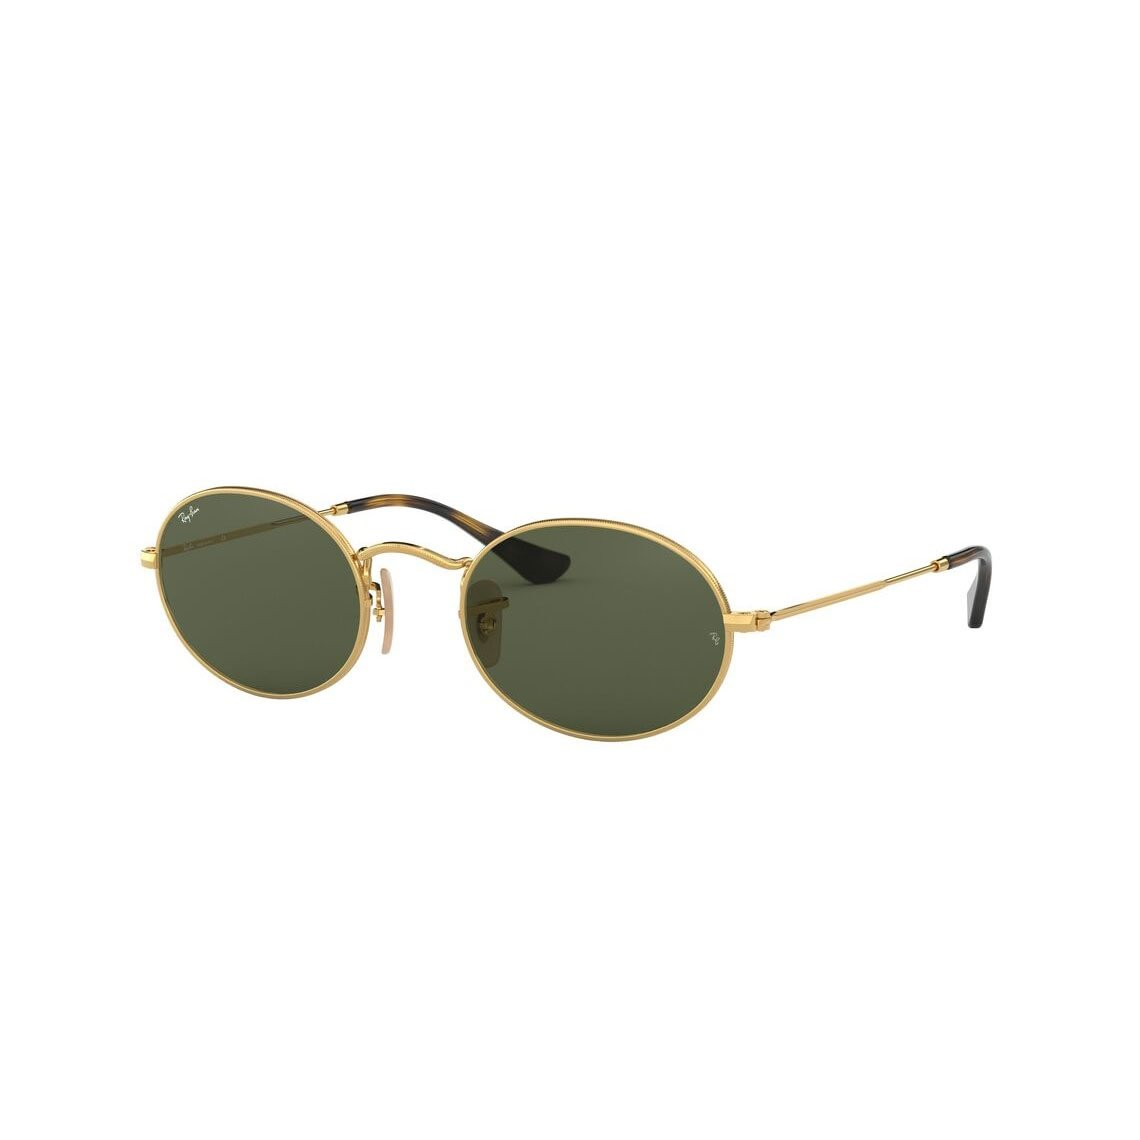 Ray-Ban Oval flat lenses RB3547N 001 51